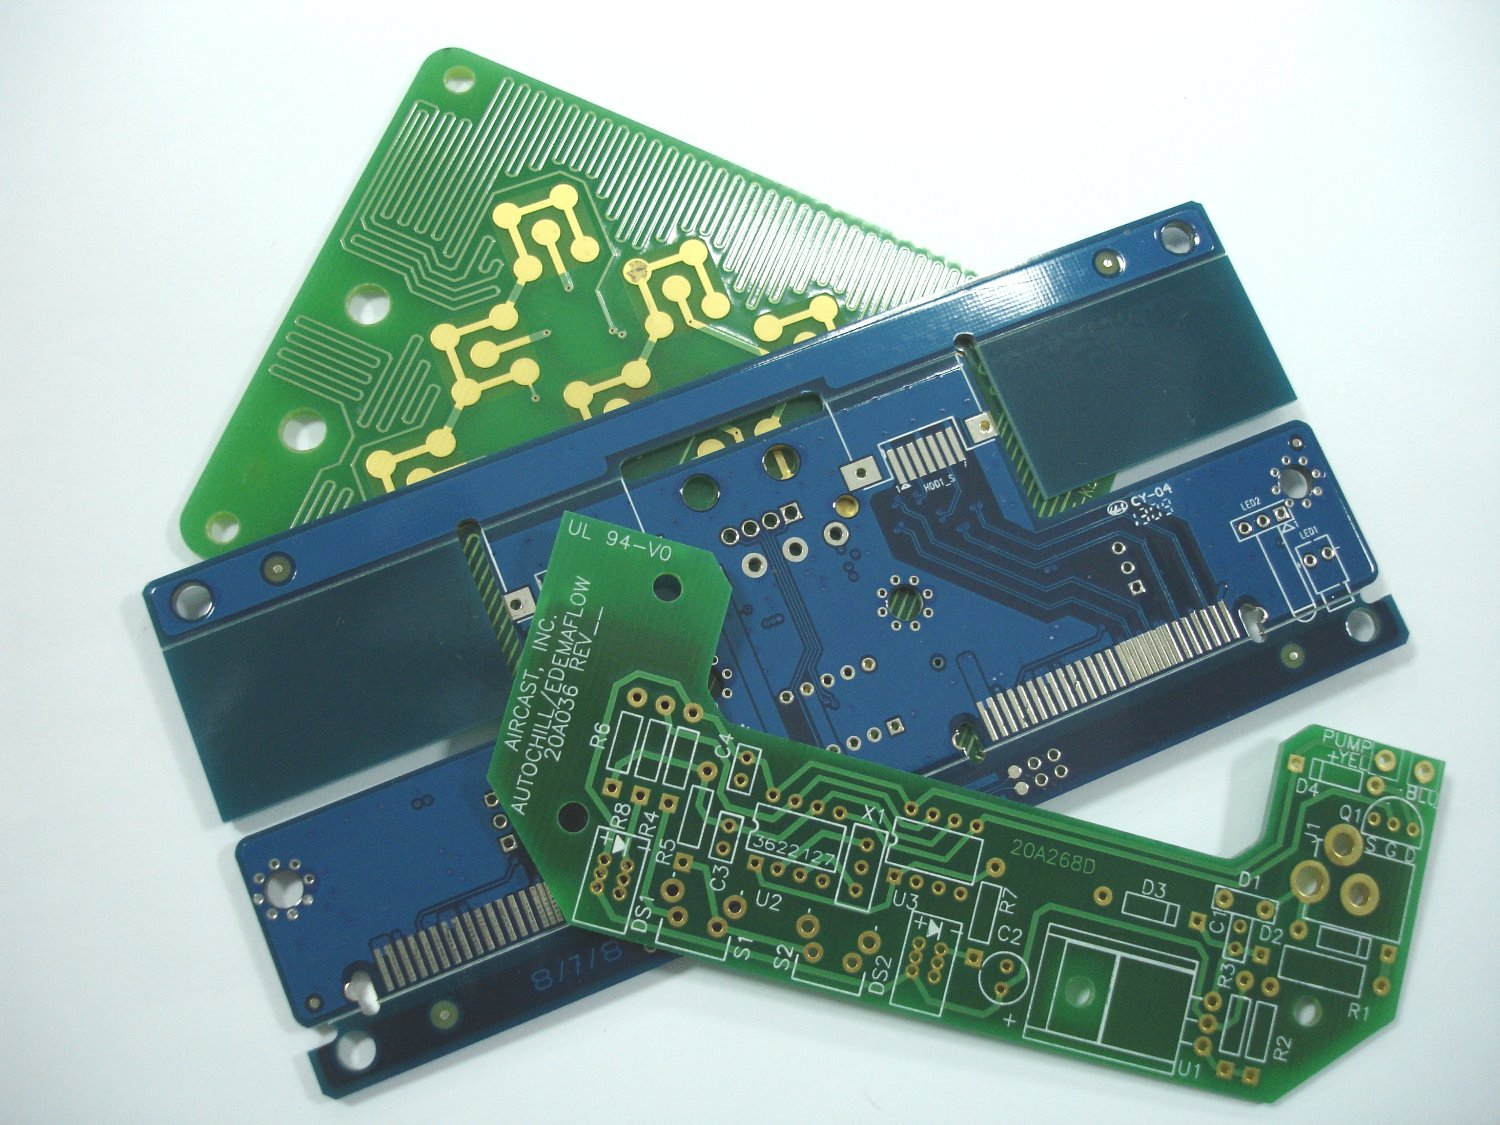 Flex Circuit Board From Taiwan Of Kingley Tech